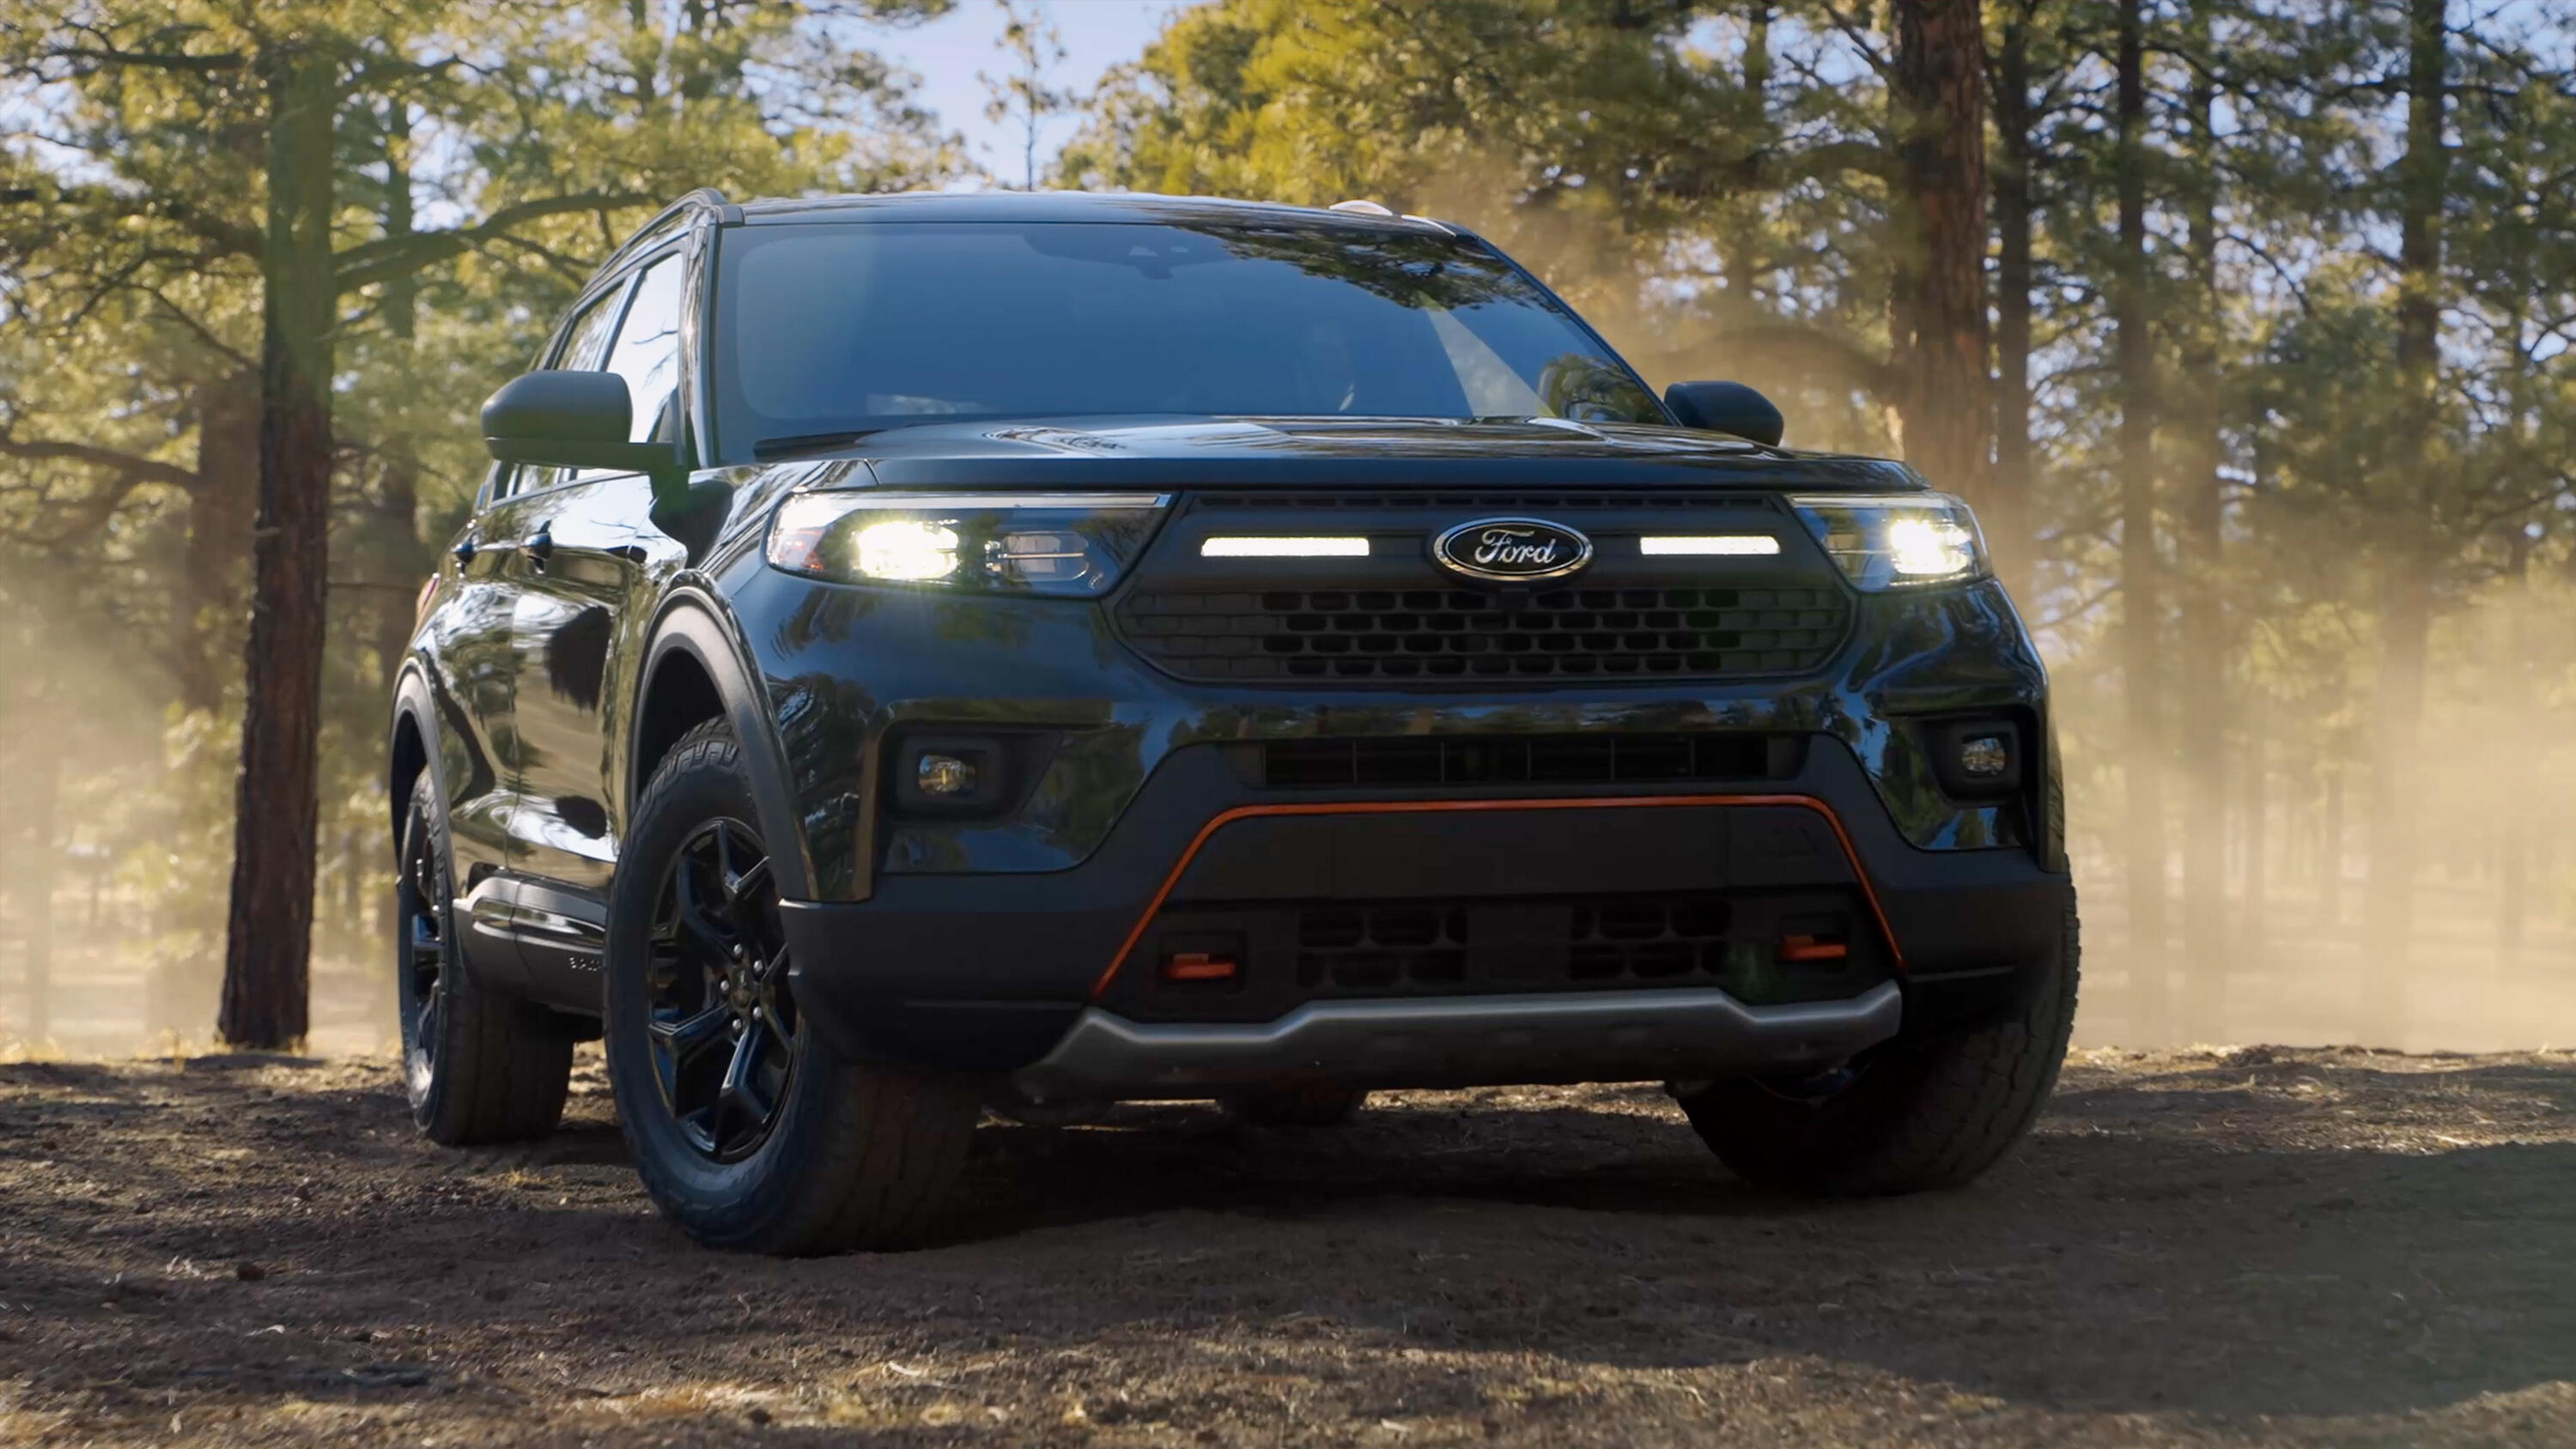 Video: Ford Explorer gets the off-road treatment with Timberline trim